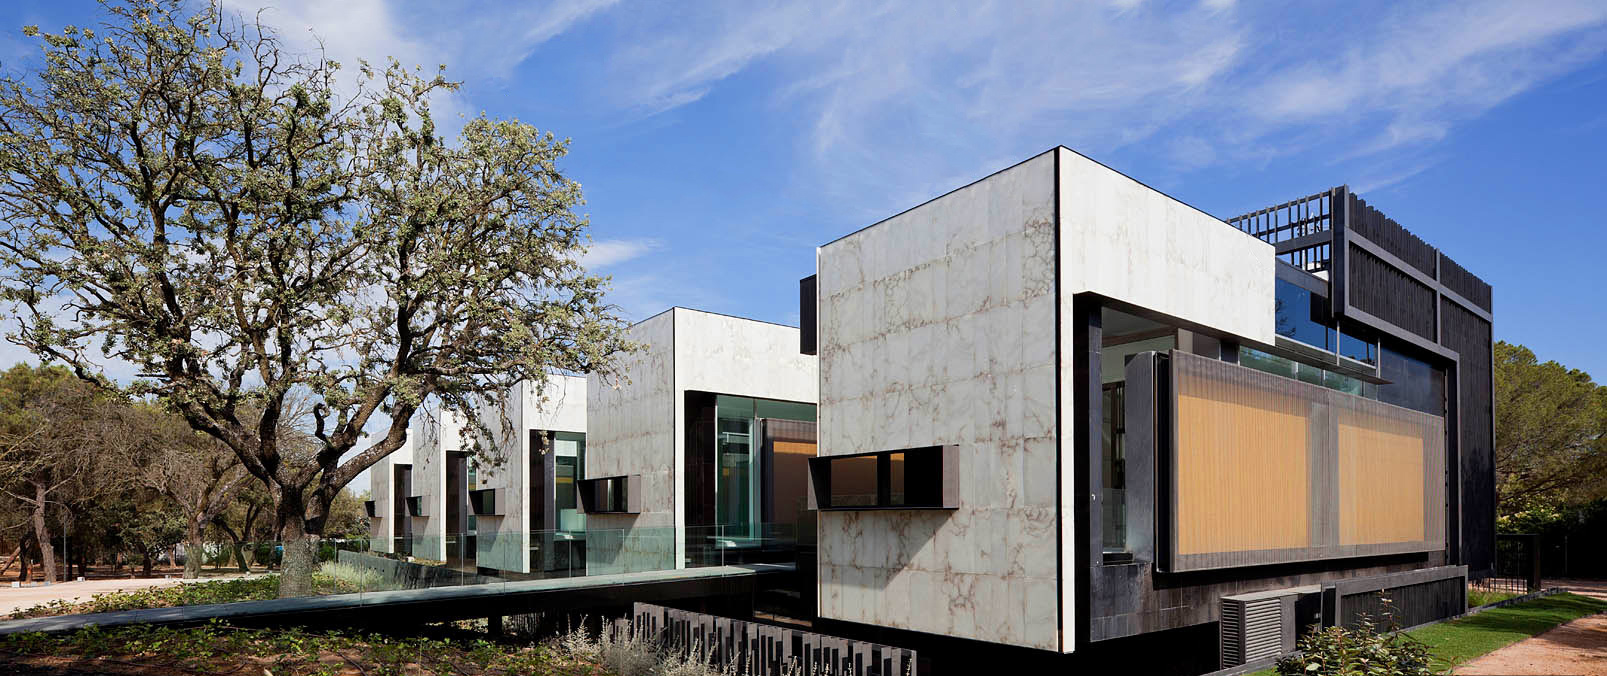 La Moraleja Luxury Residence - Alcobendas, Madrid, Spain